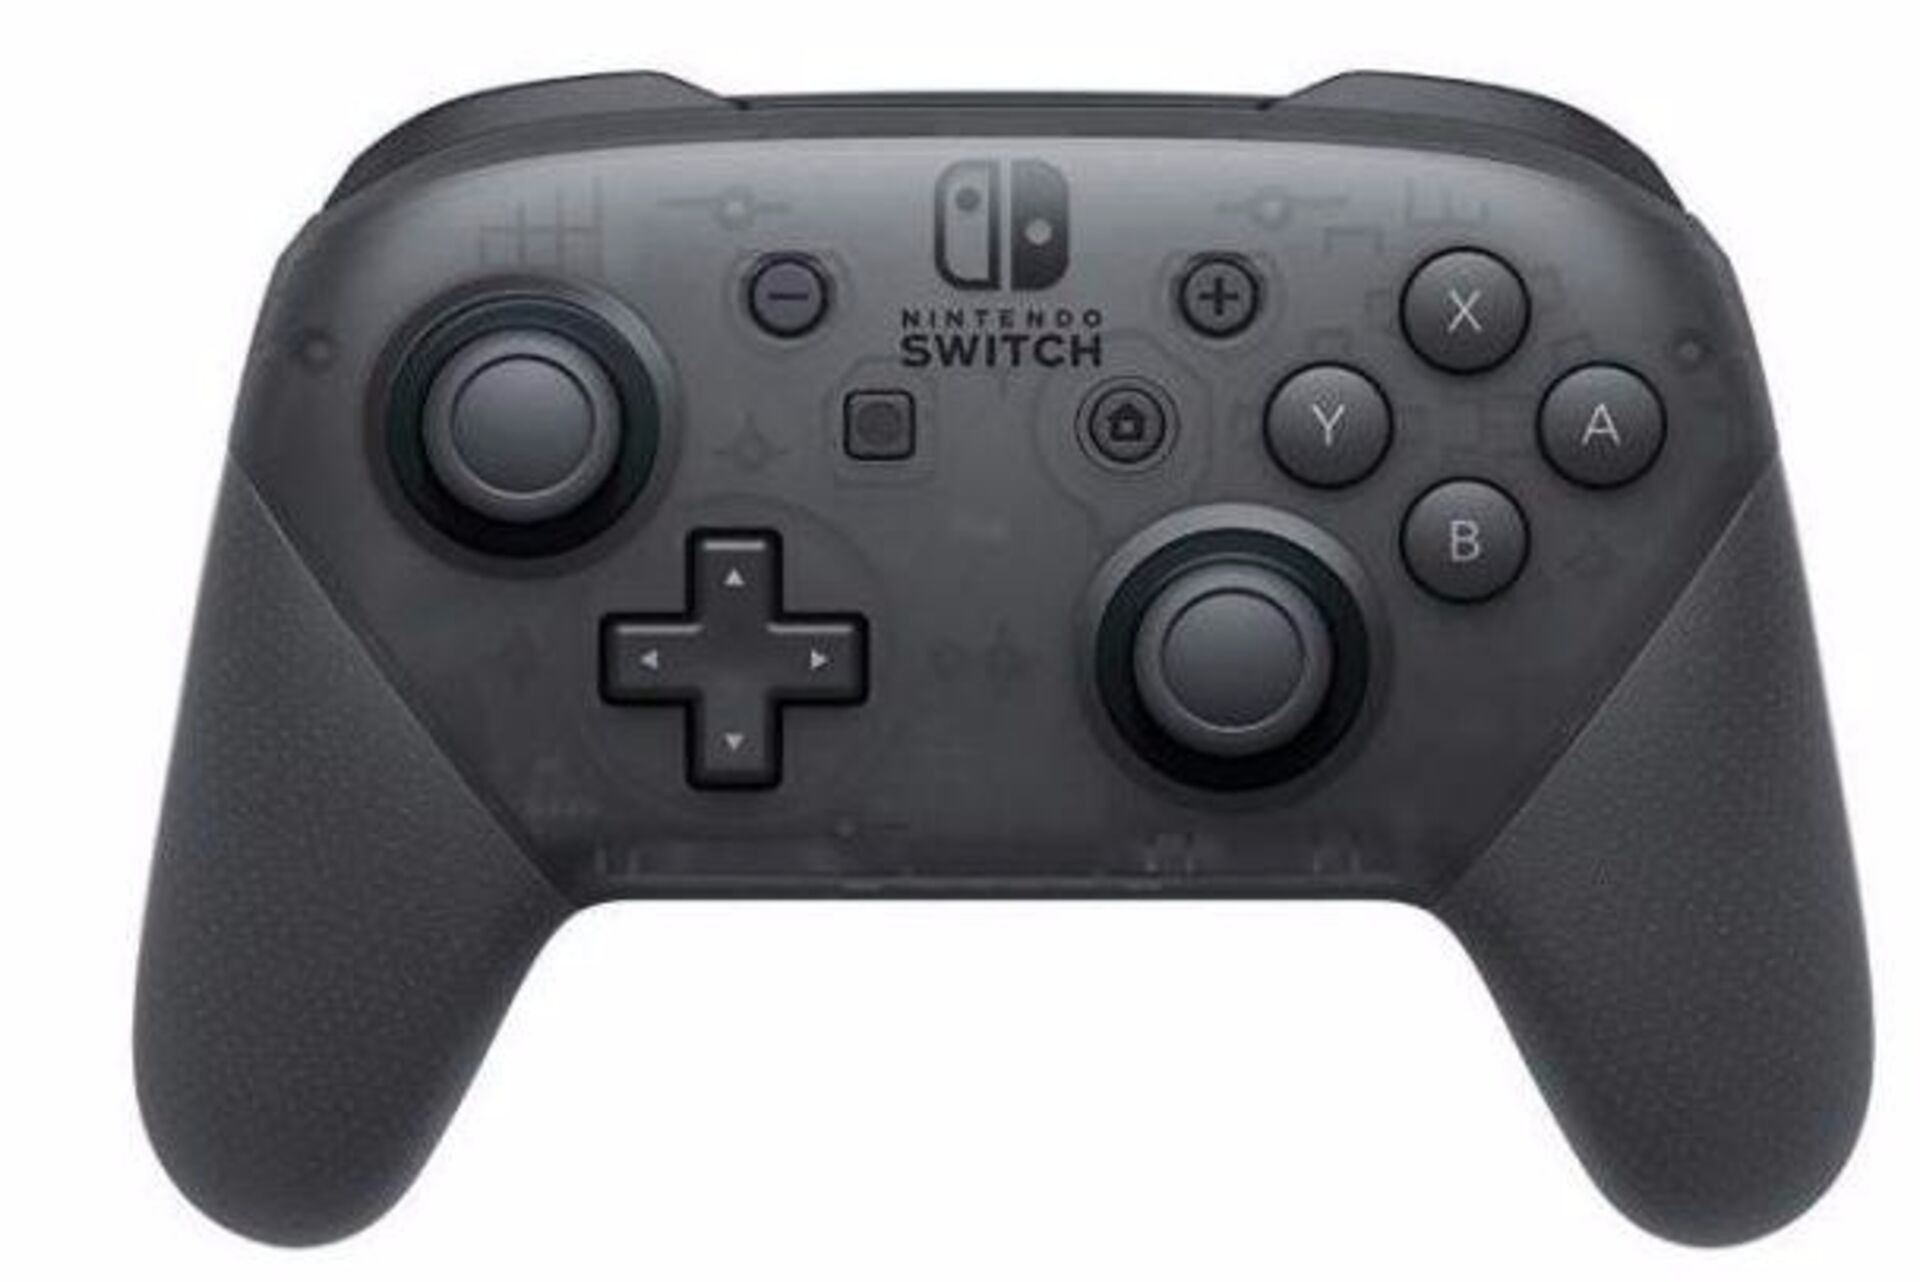 Nintendo Switch Pro Controller shown working on PC